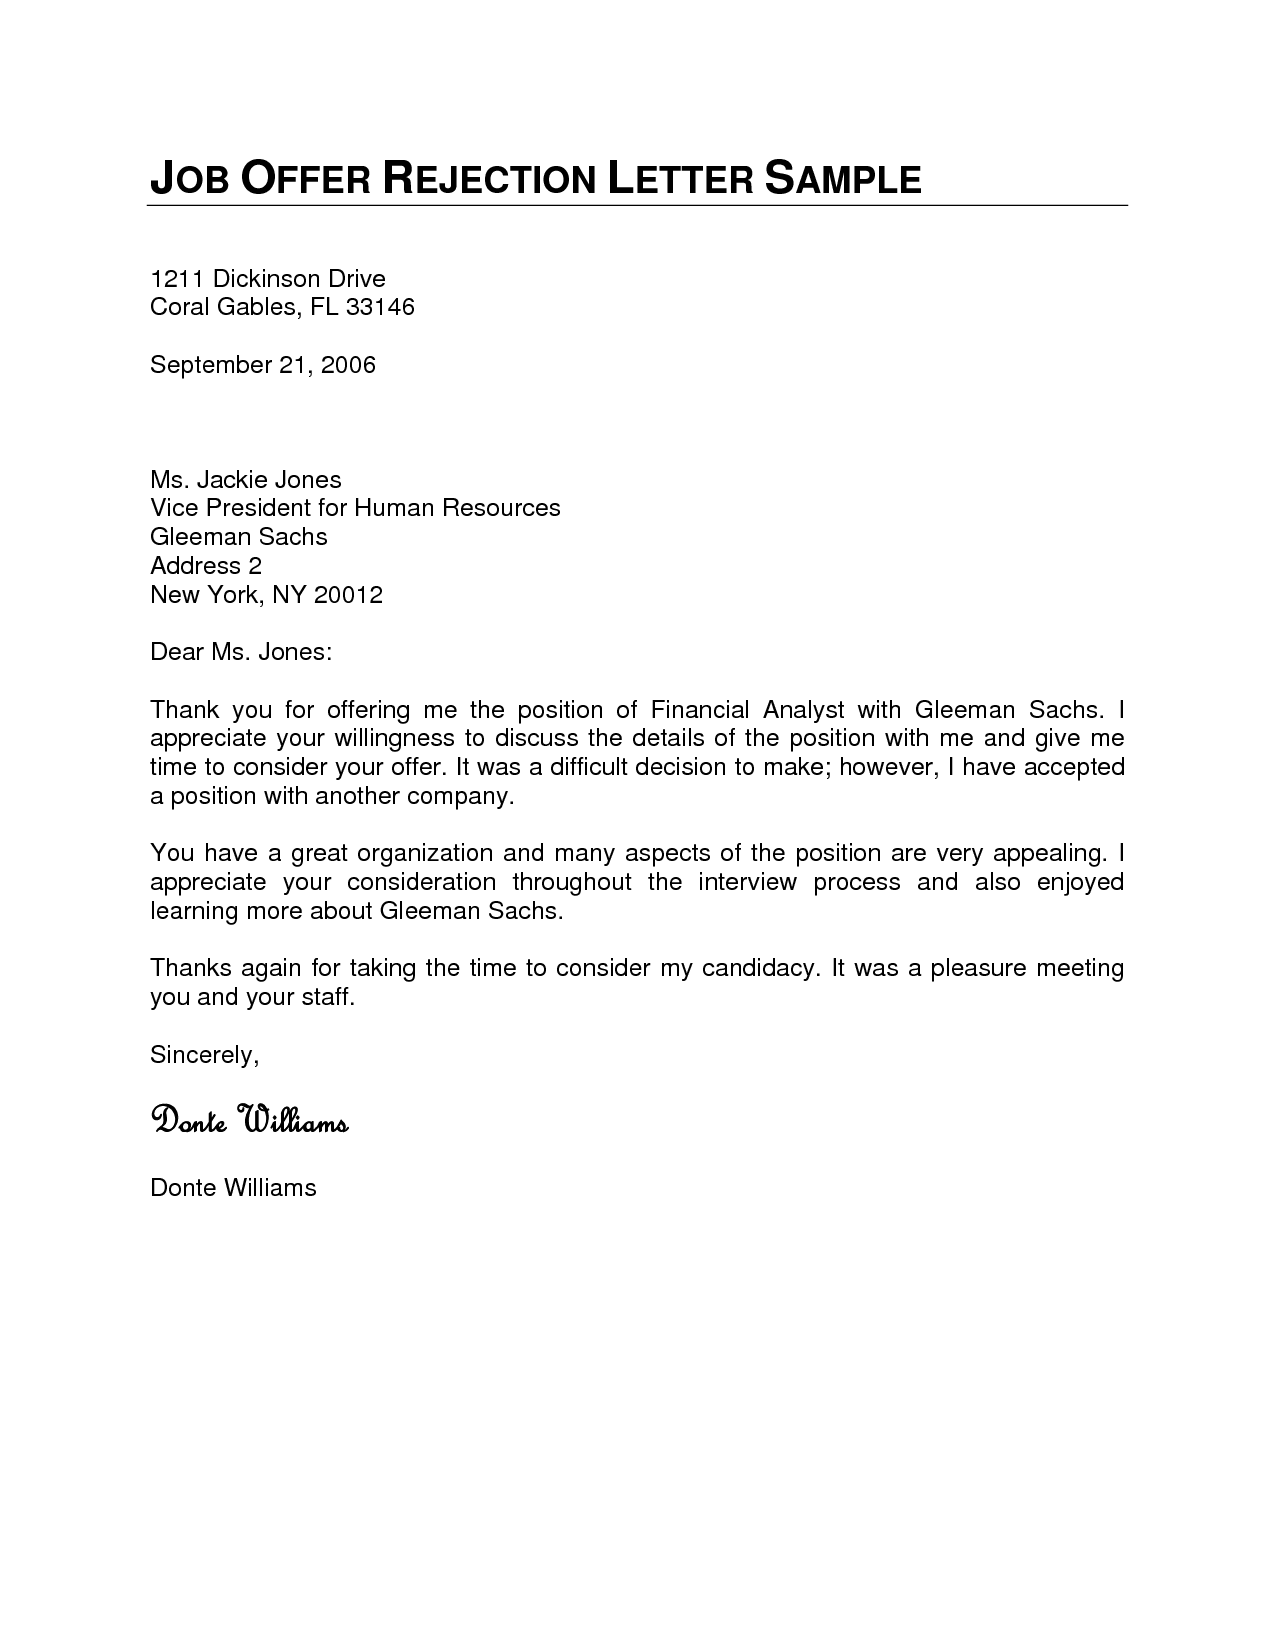 Sample job rejection letter vatozozdevelopment sample job rejection letter spiritdancerdesigns